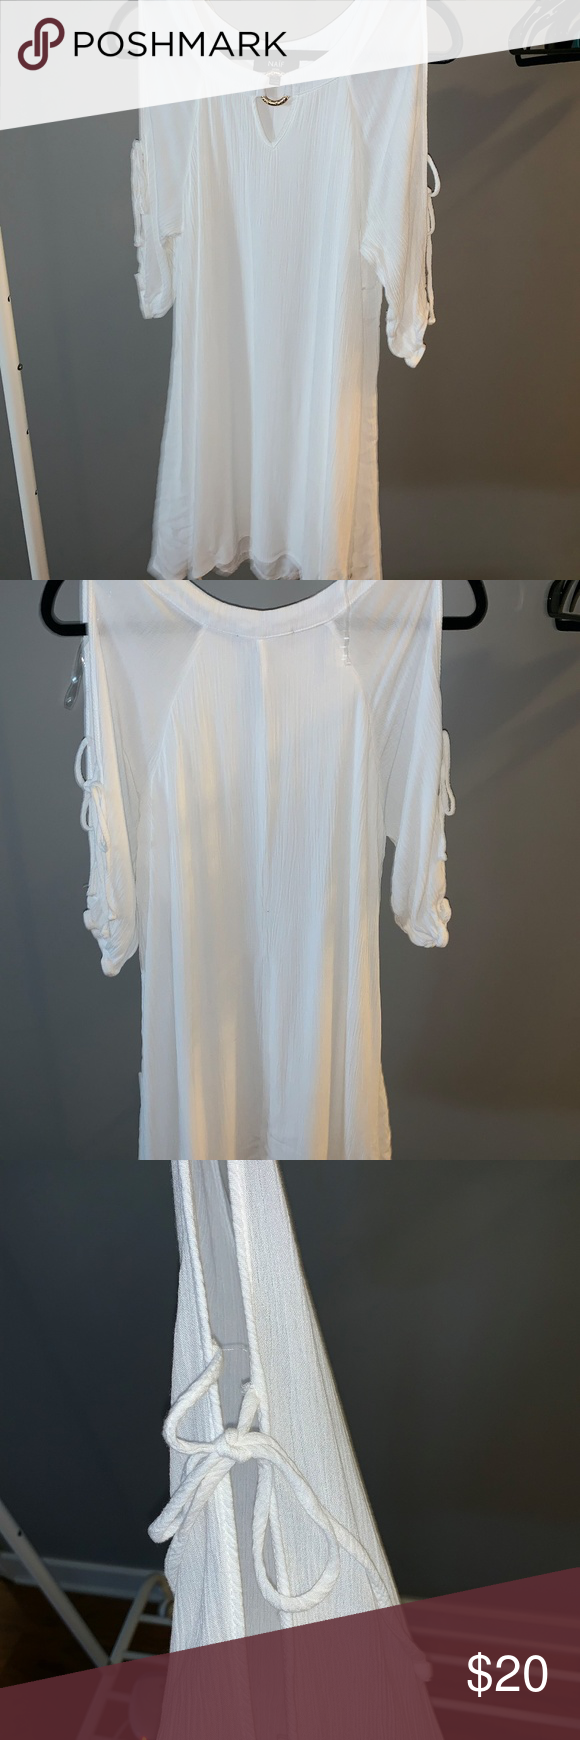 Naif White Dress With Arm Cutouts Naif White Dress With Arm Cutouts Size PL 100% Rayon NWOT naif Dresses Midi